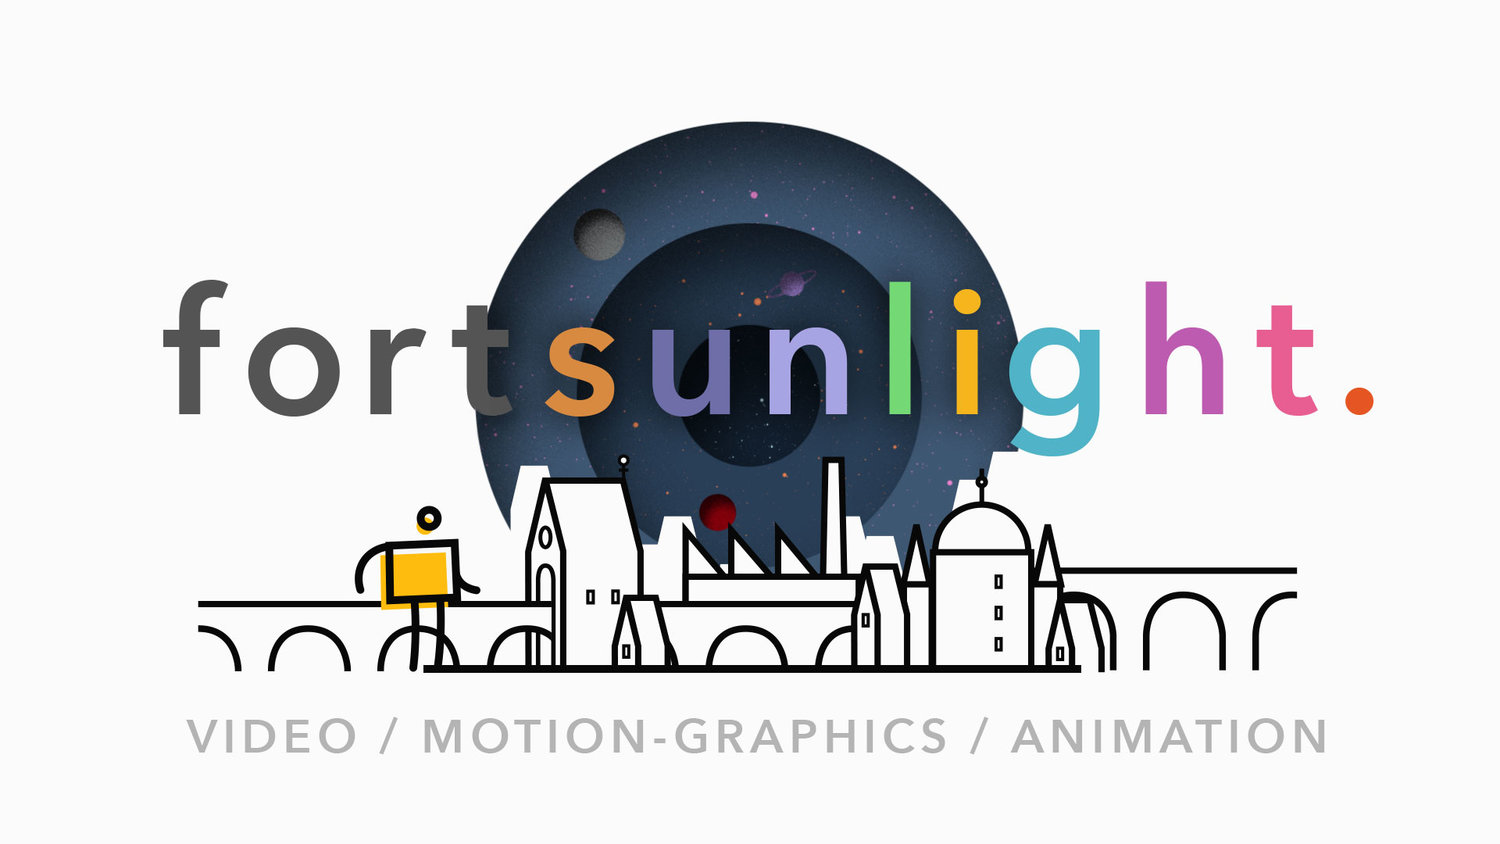 Fortsunlight - video & motion graphics production based in